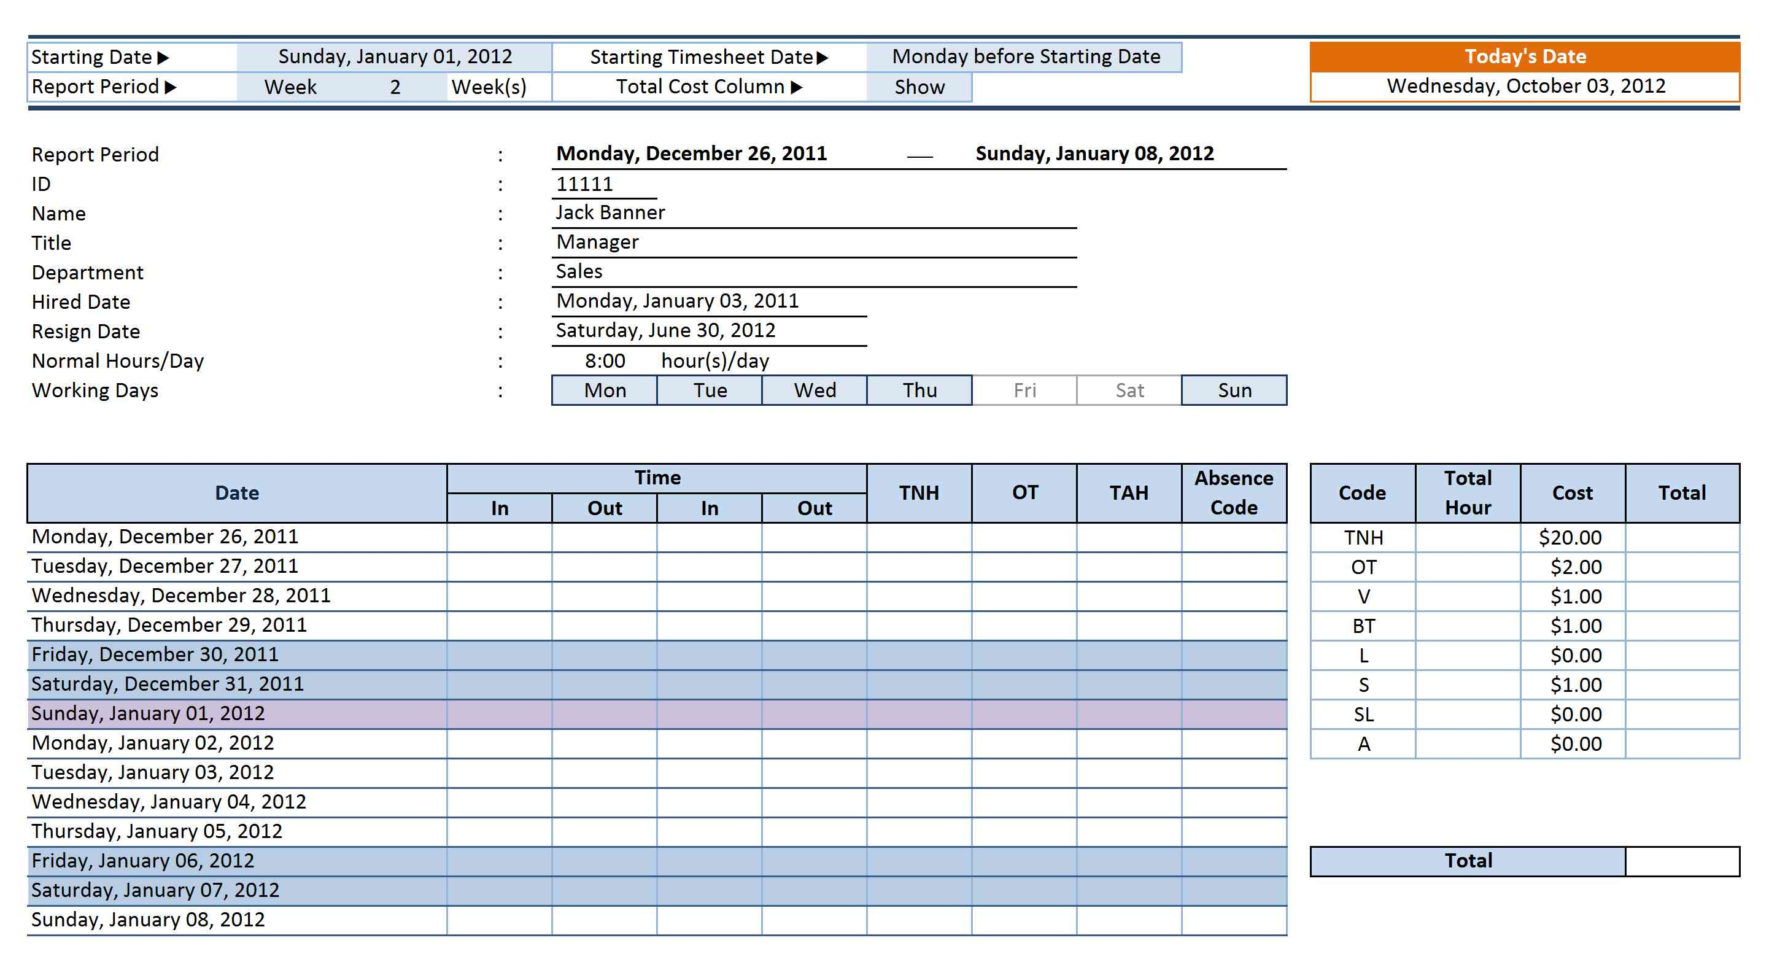 Payroll Accrual Spreadsheet Template Within Vacation And